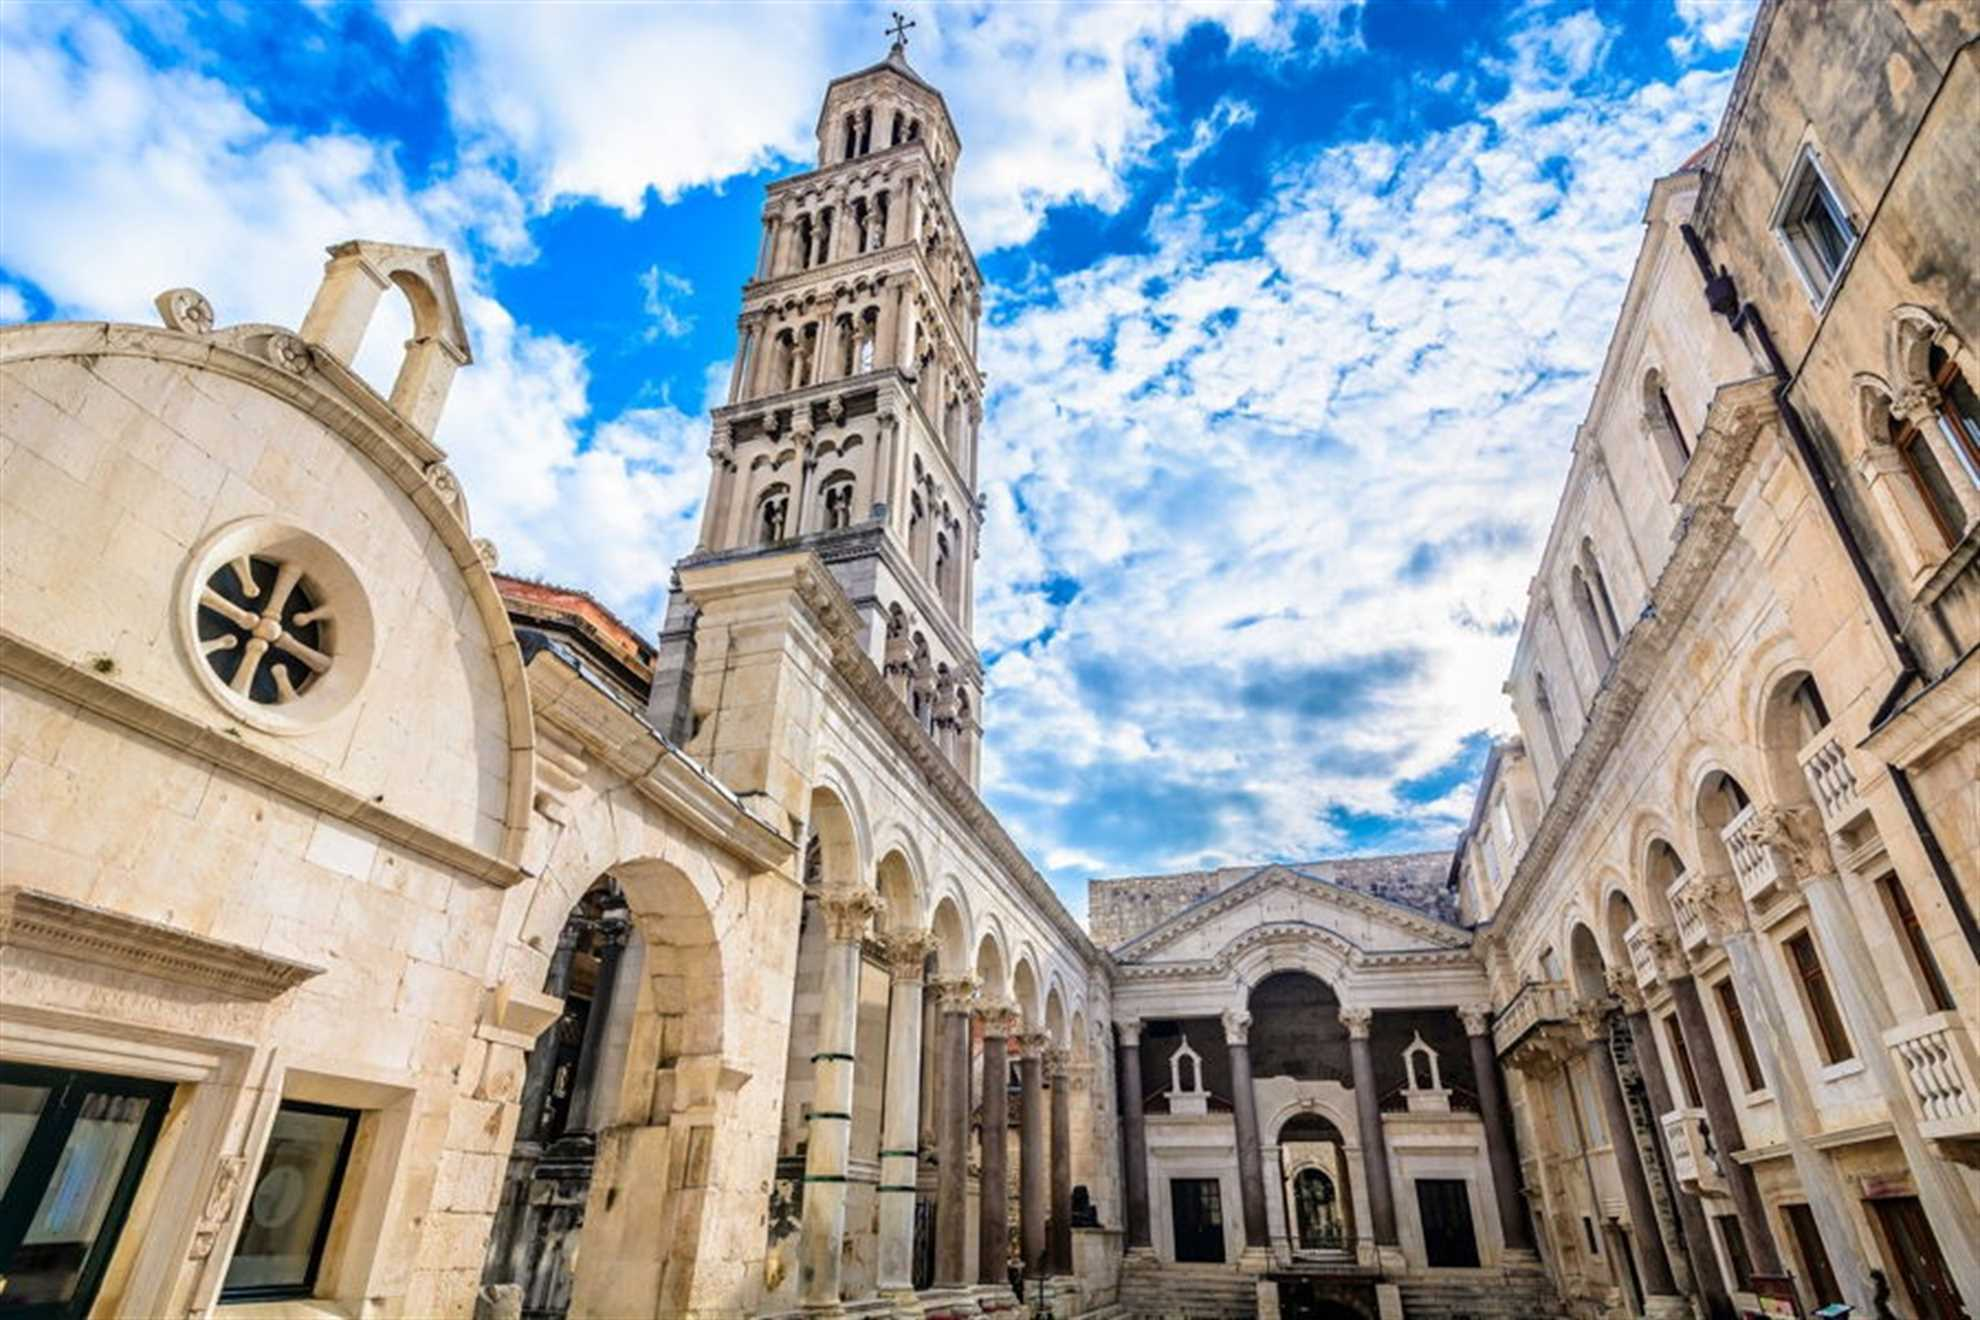 Diocletians Palace in Split